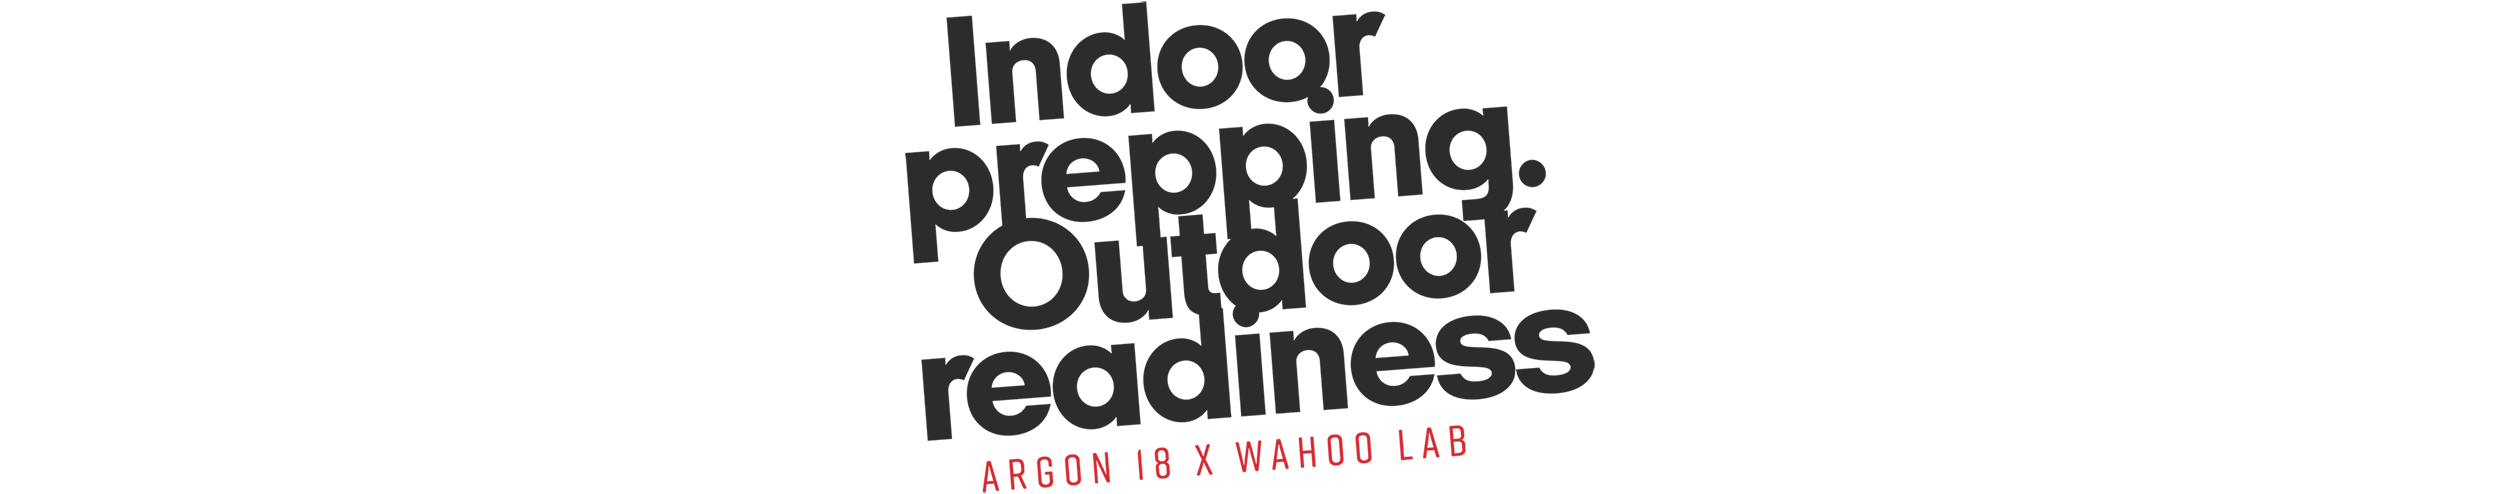 Wahoo Power Lab - Indoor Prepping Outdoor Readiness